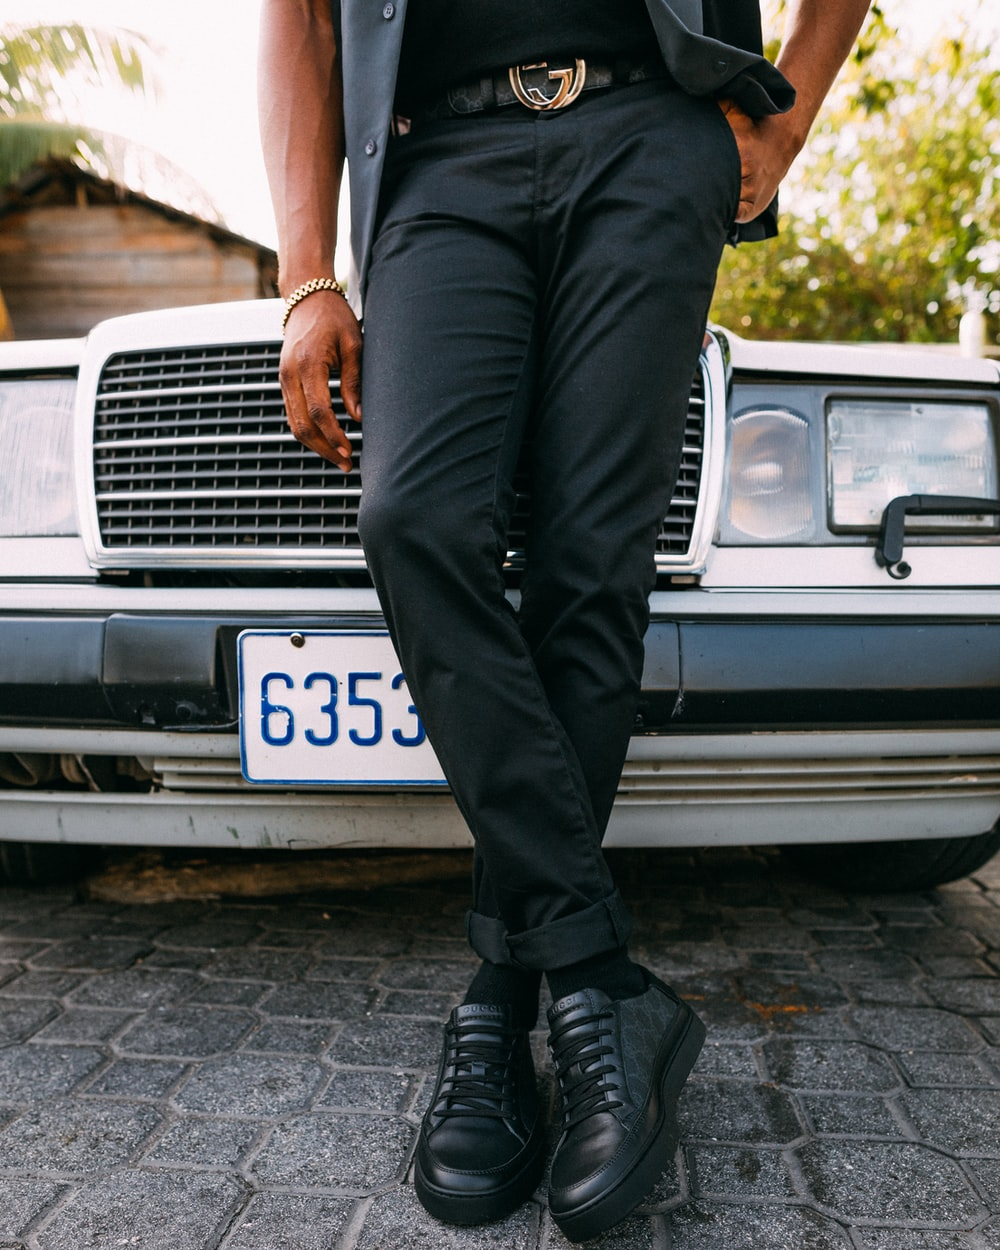 person wearing black dress pants leaning on black vehicle